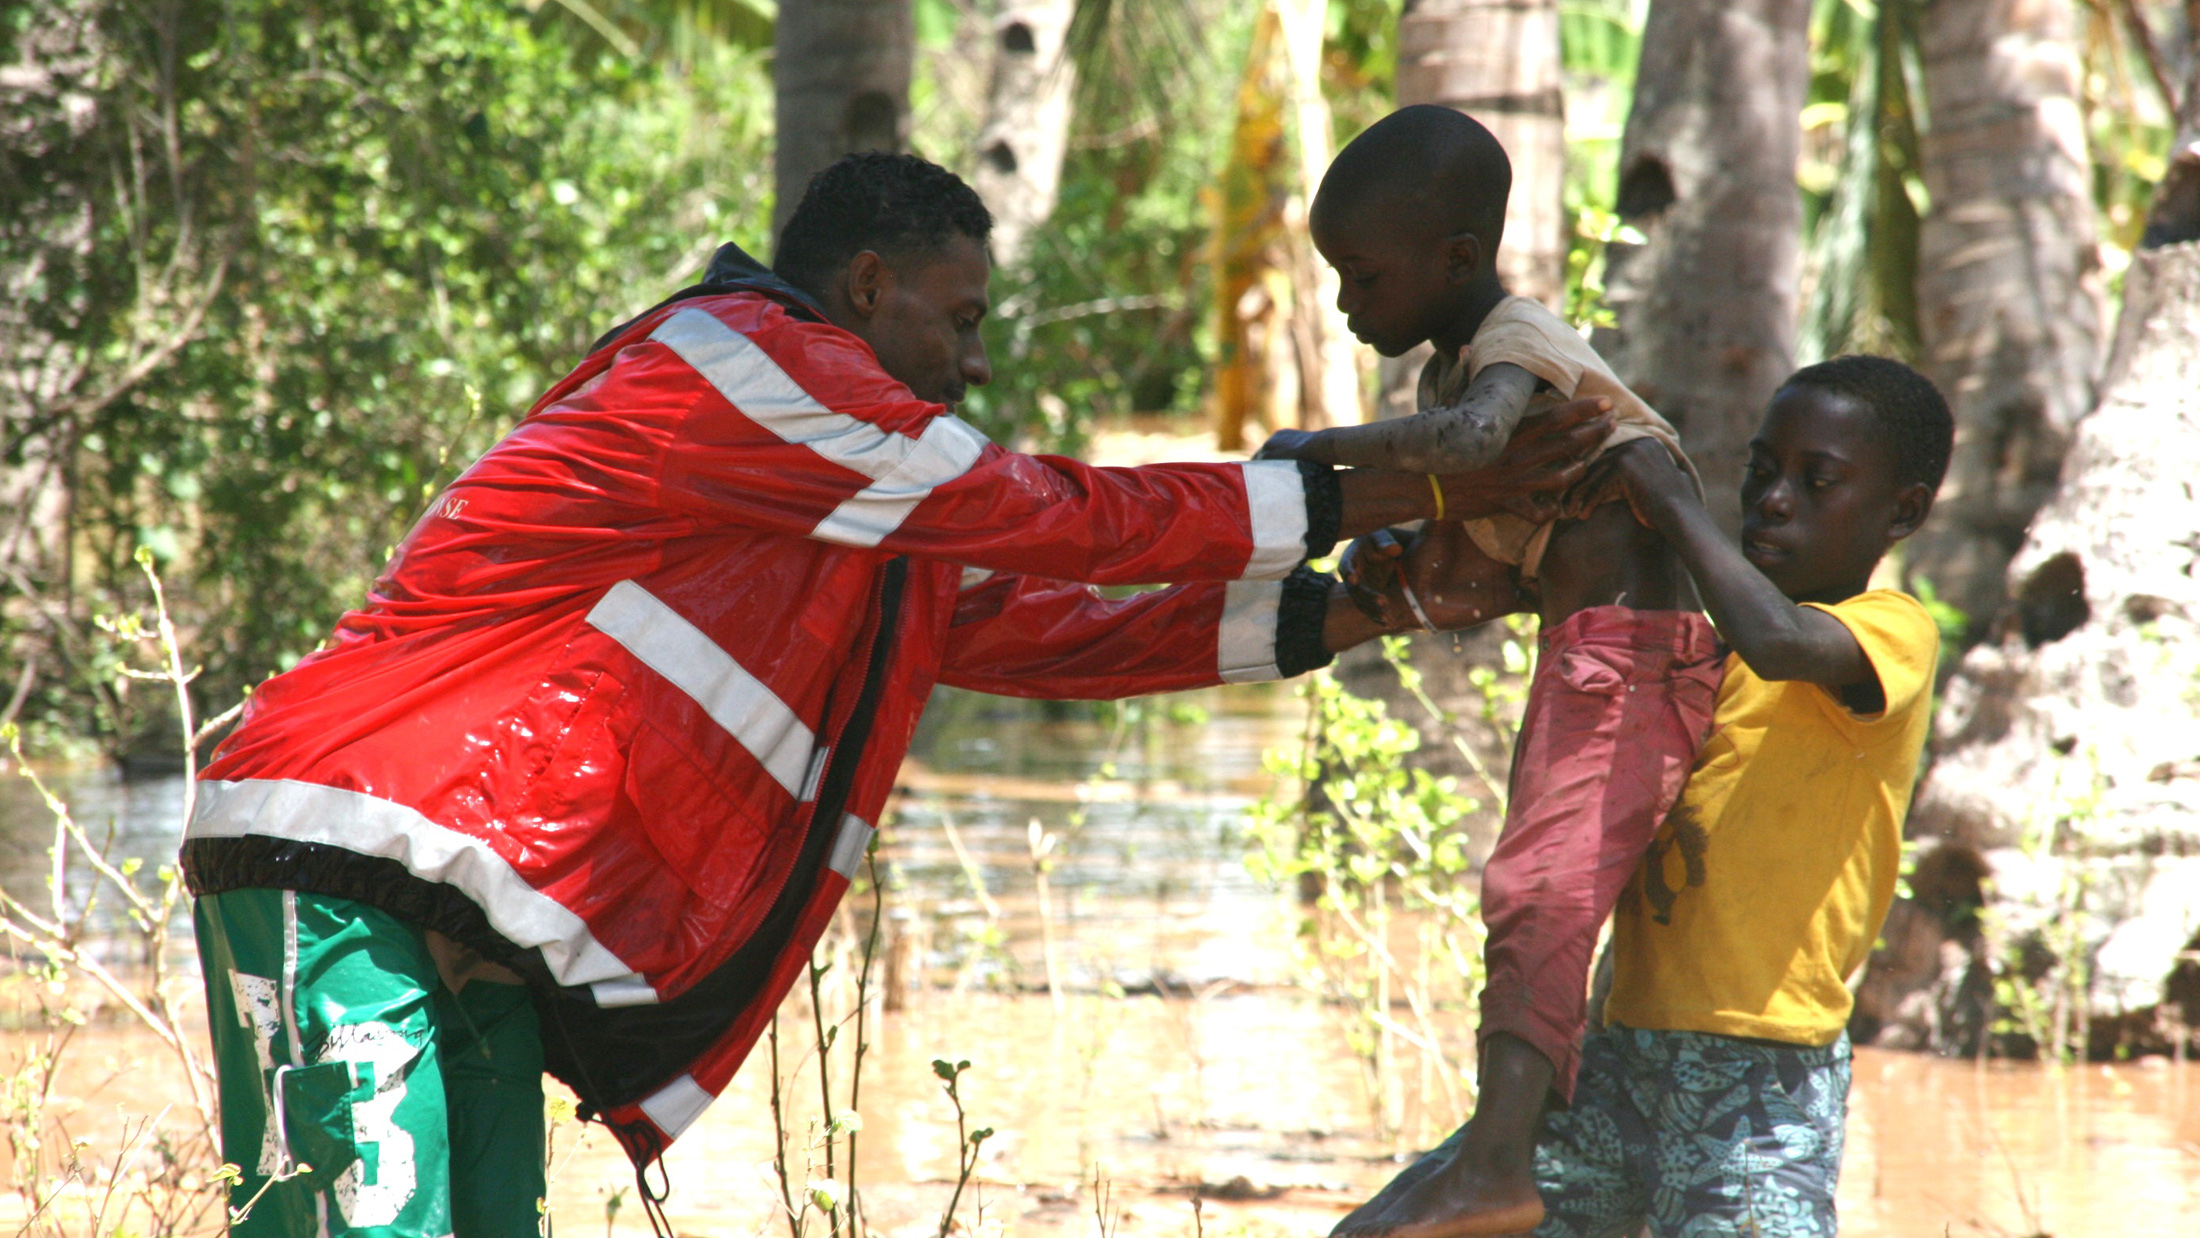 A Kenya Red Cross volunteer helps evacuate boys after heavy rains in Ganda, Malindi caused heavy flooding (Apr 2013)